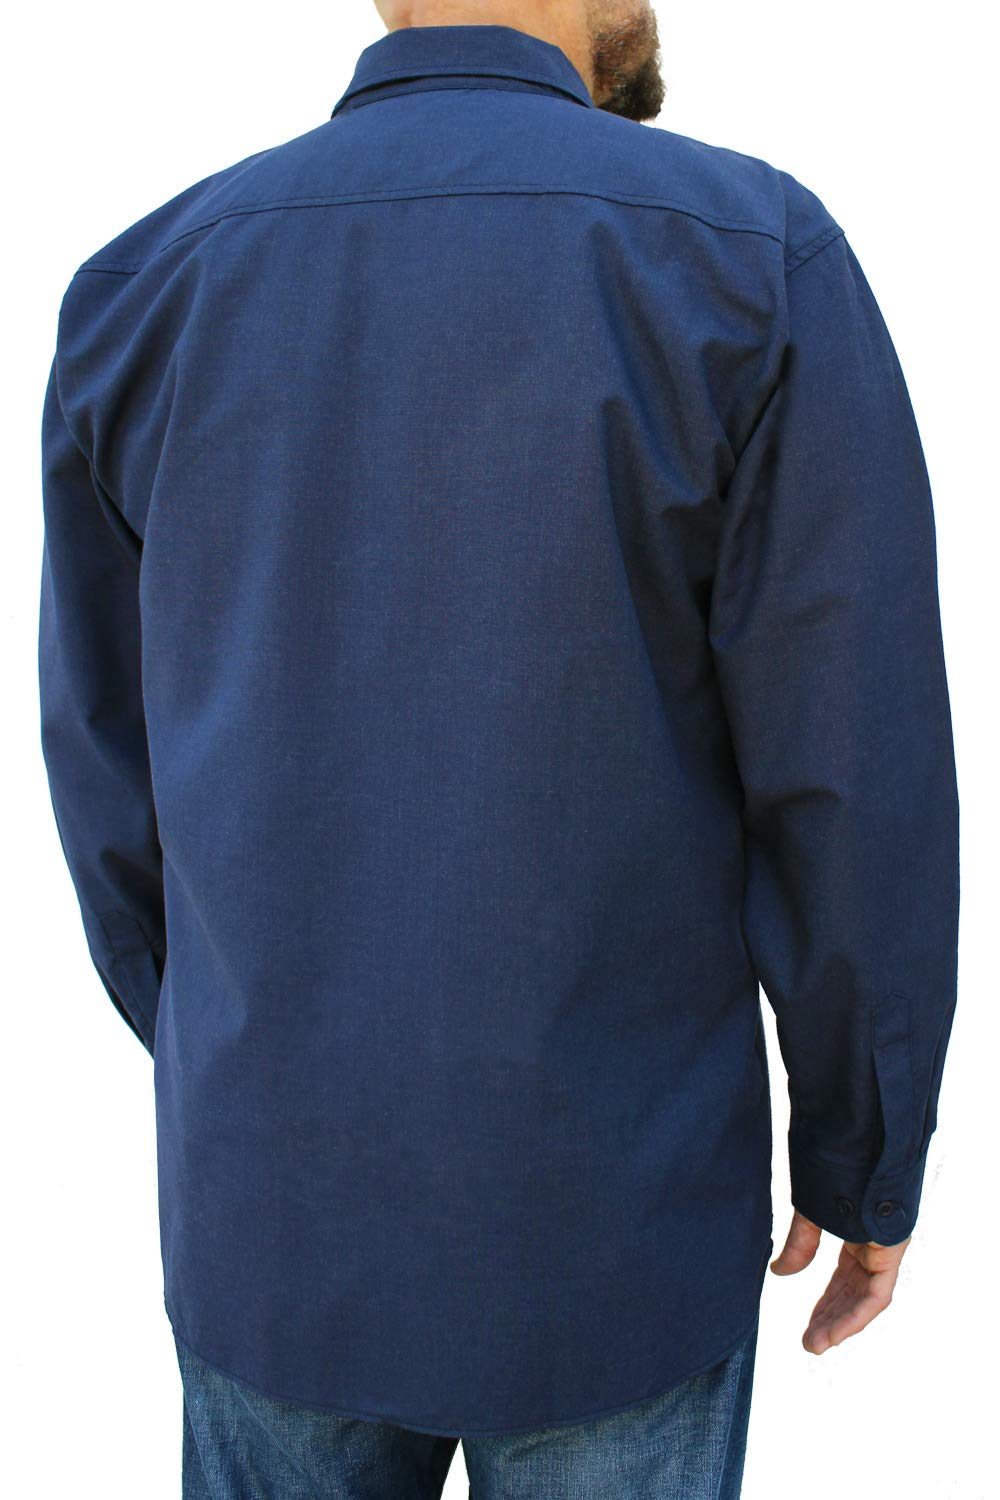 Benchmark FR Silver Bullet, 5.1 oz Ultra Lightweight FR Shirt, NPFA 2112 & CAT 2, Moisture Wicking, Men's FRC with 9 Cal rating, Made in USA, Advanced FR Materials, Navy, Large by Benchmark FR (Image #5)